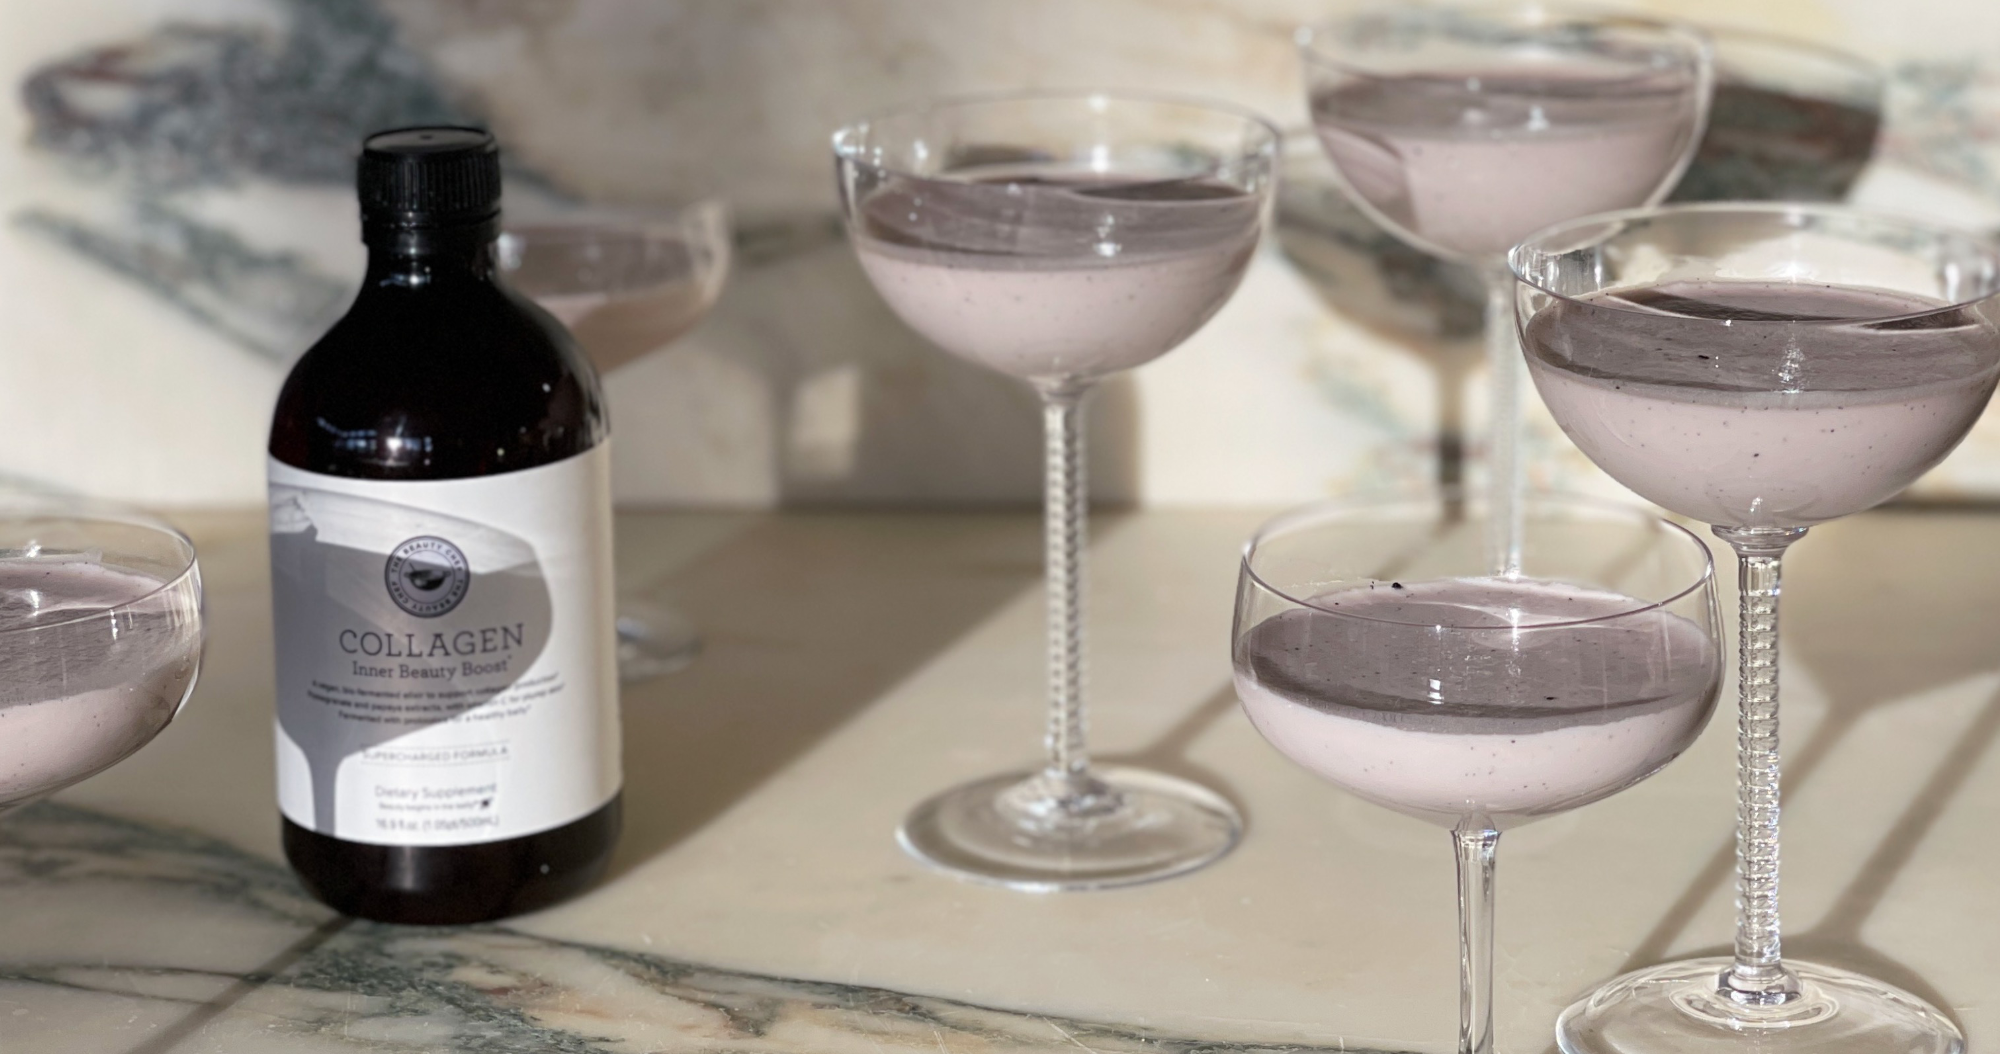 Coconut Panna Cotta with COLLAGEN Inner Beauty Boost